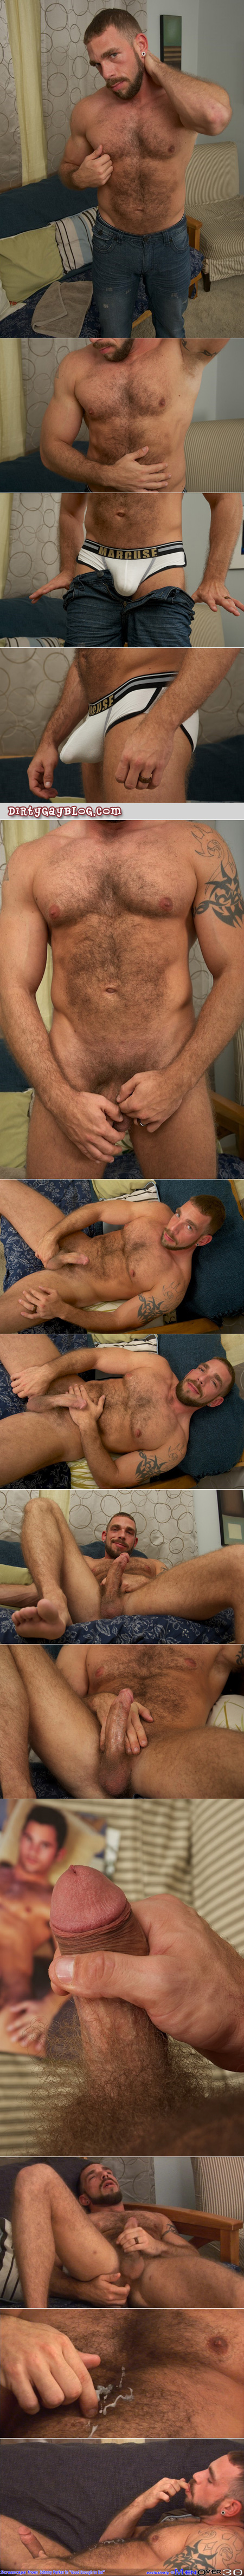 Beefy, hairy guy with a boner in his tight white briefs jerks off and eats his own cum.